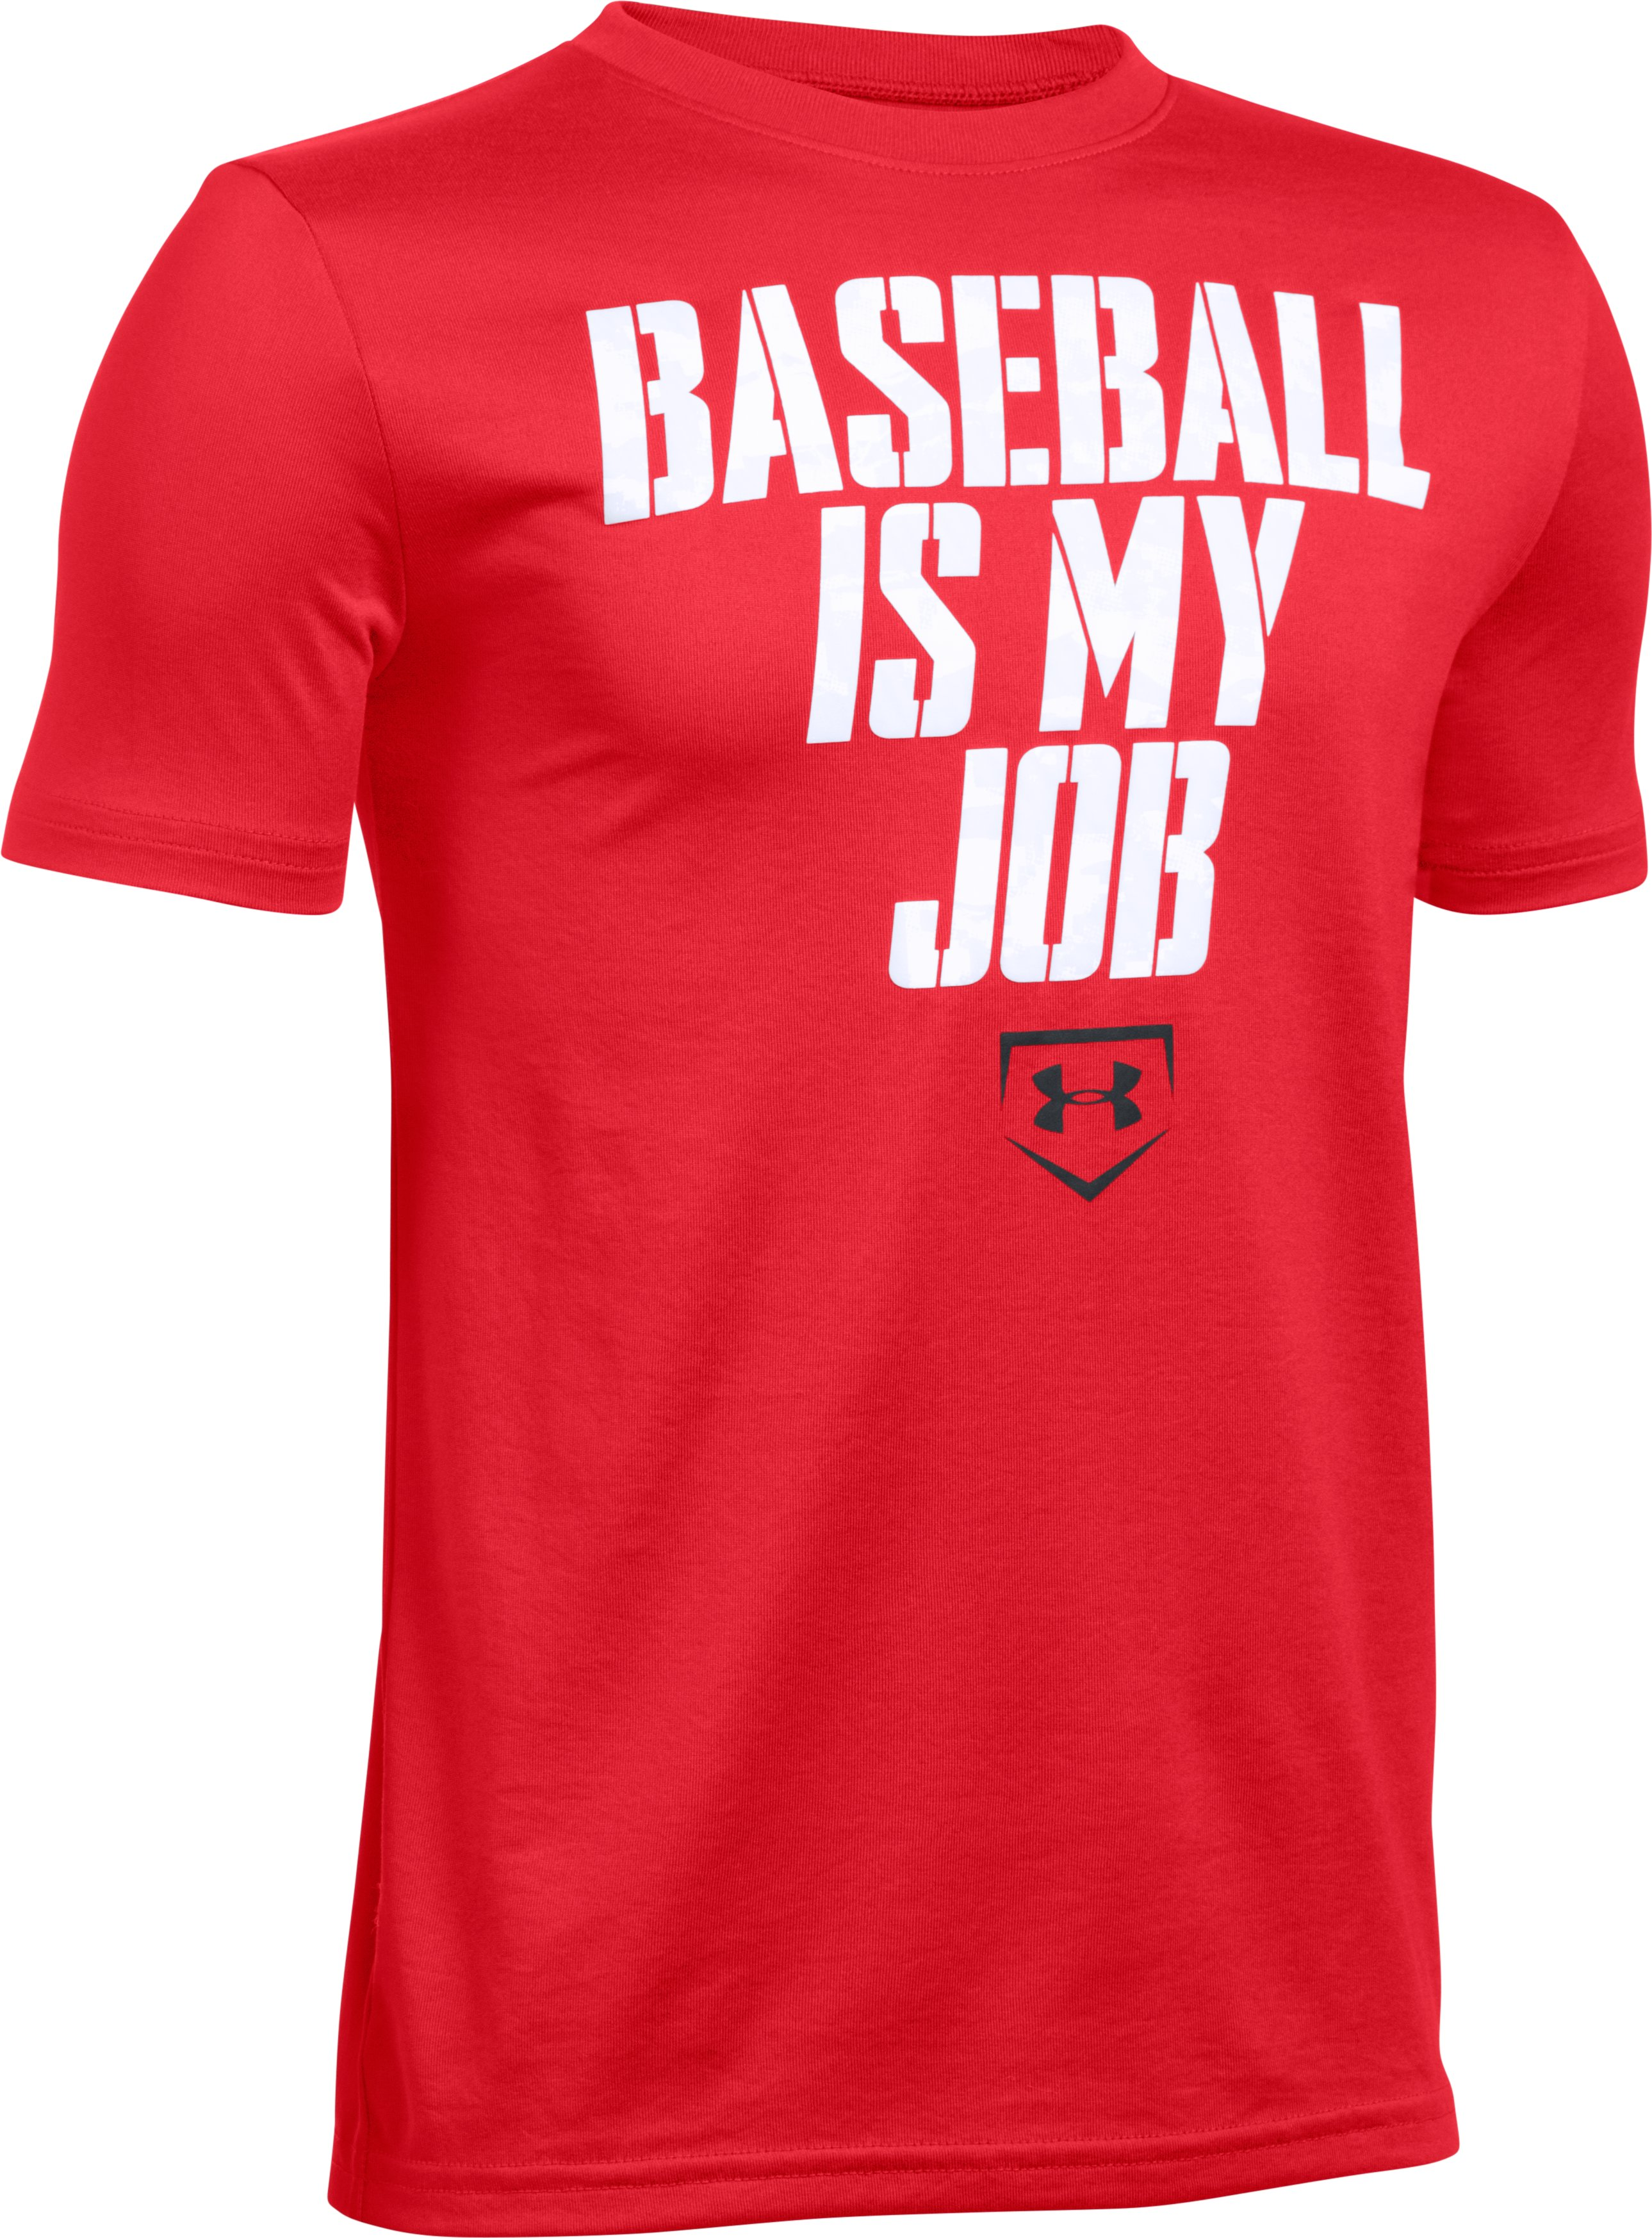 Boys' UA Baseball Is My Job T-Shirt, Red